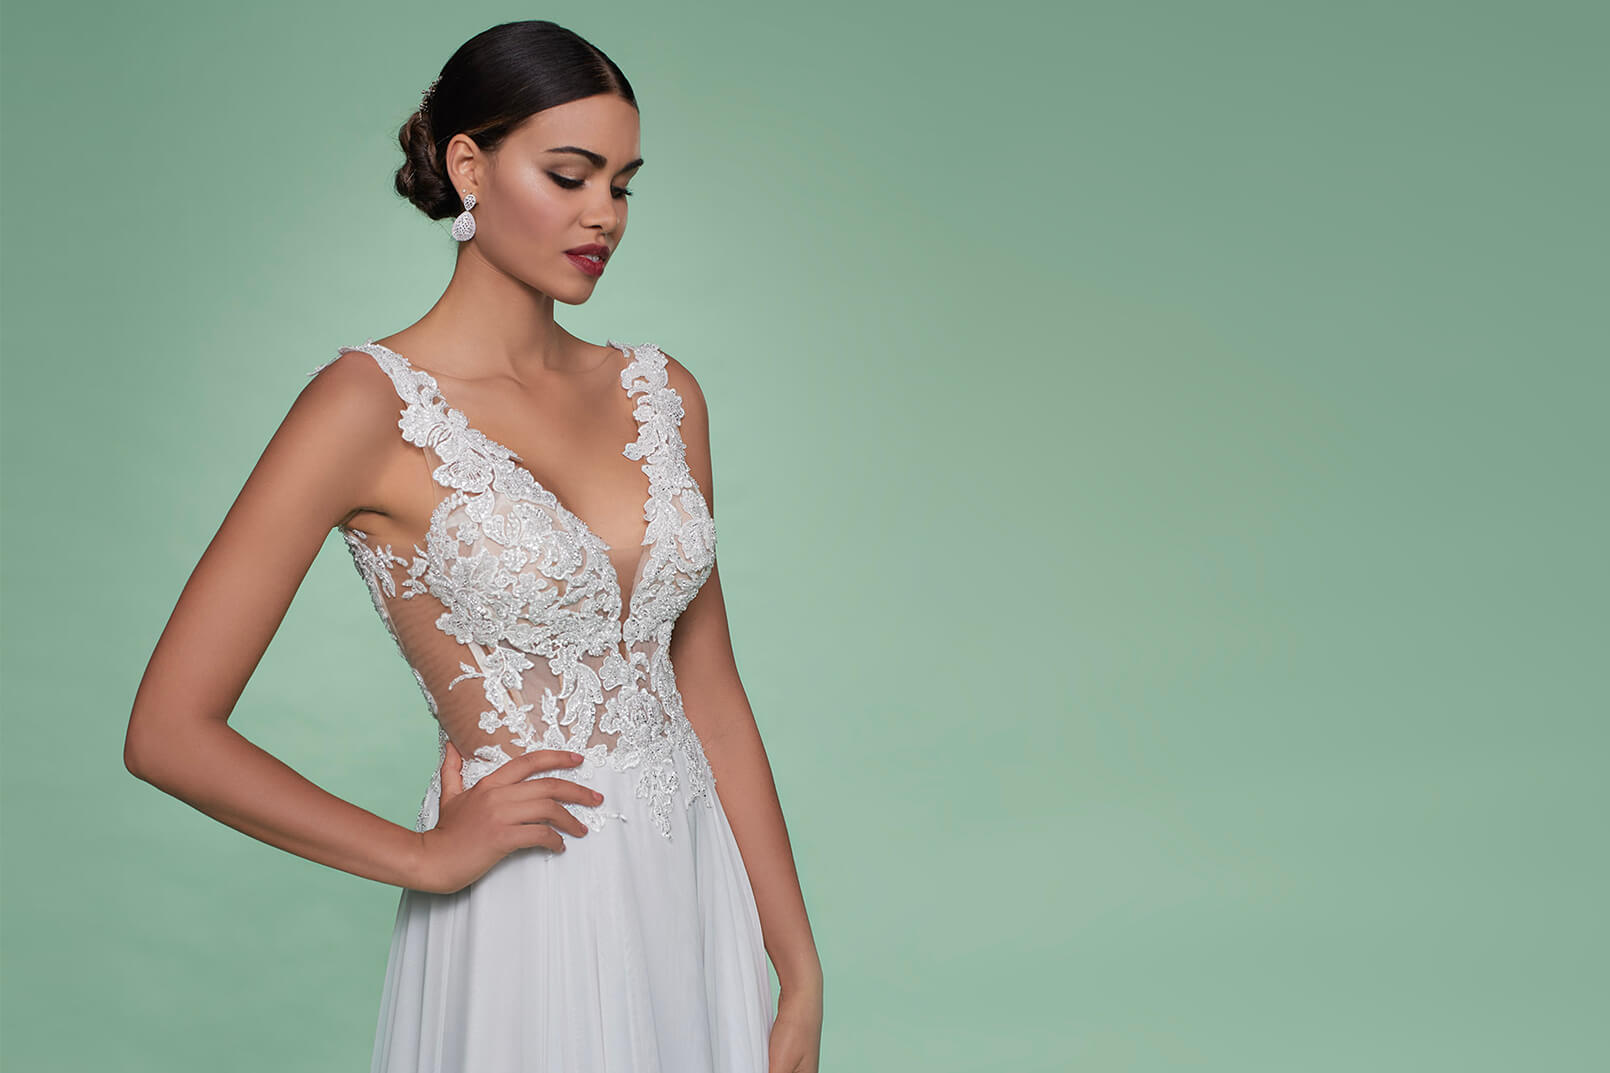 new wedding dresses collection 2019